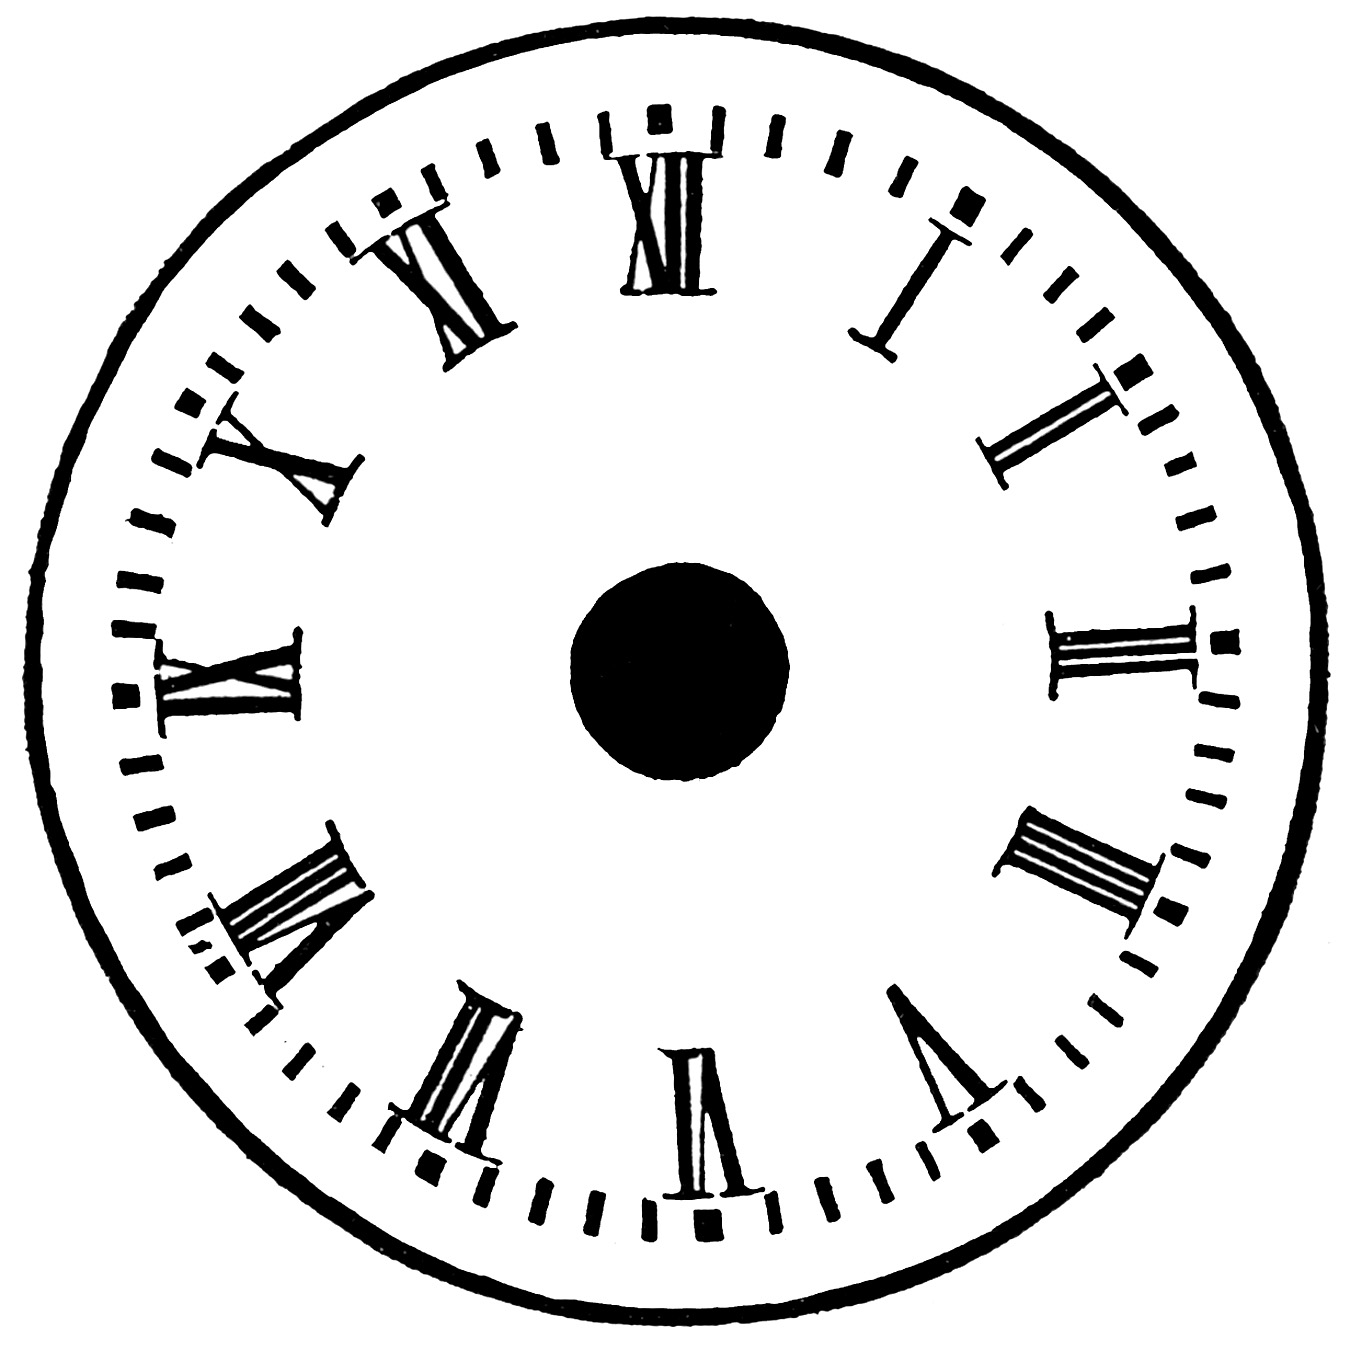 Neighborhood watch face clipart black and white graphic black and white library clock dial. Free cliparts | Clipart Panda - Free Clipart Images graphic black and white library